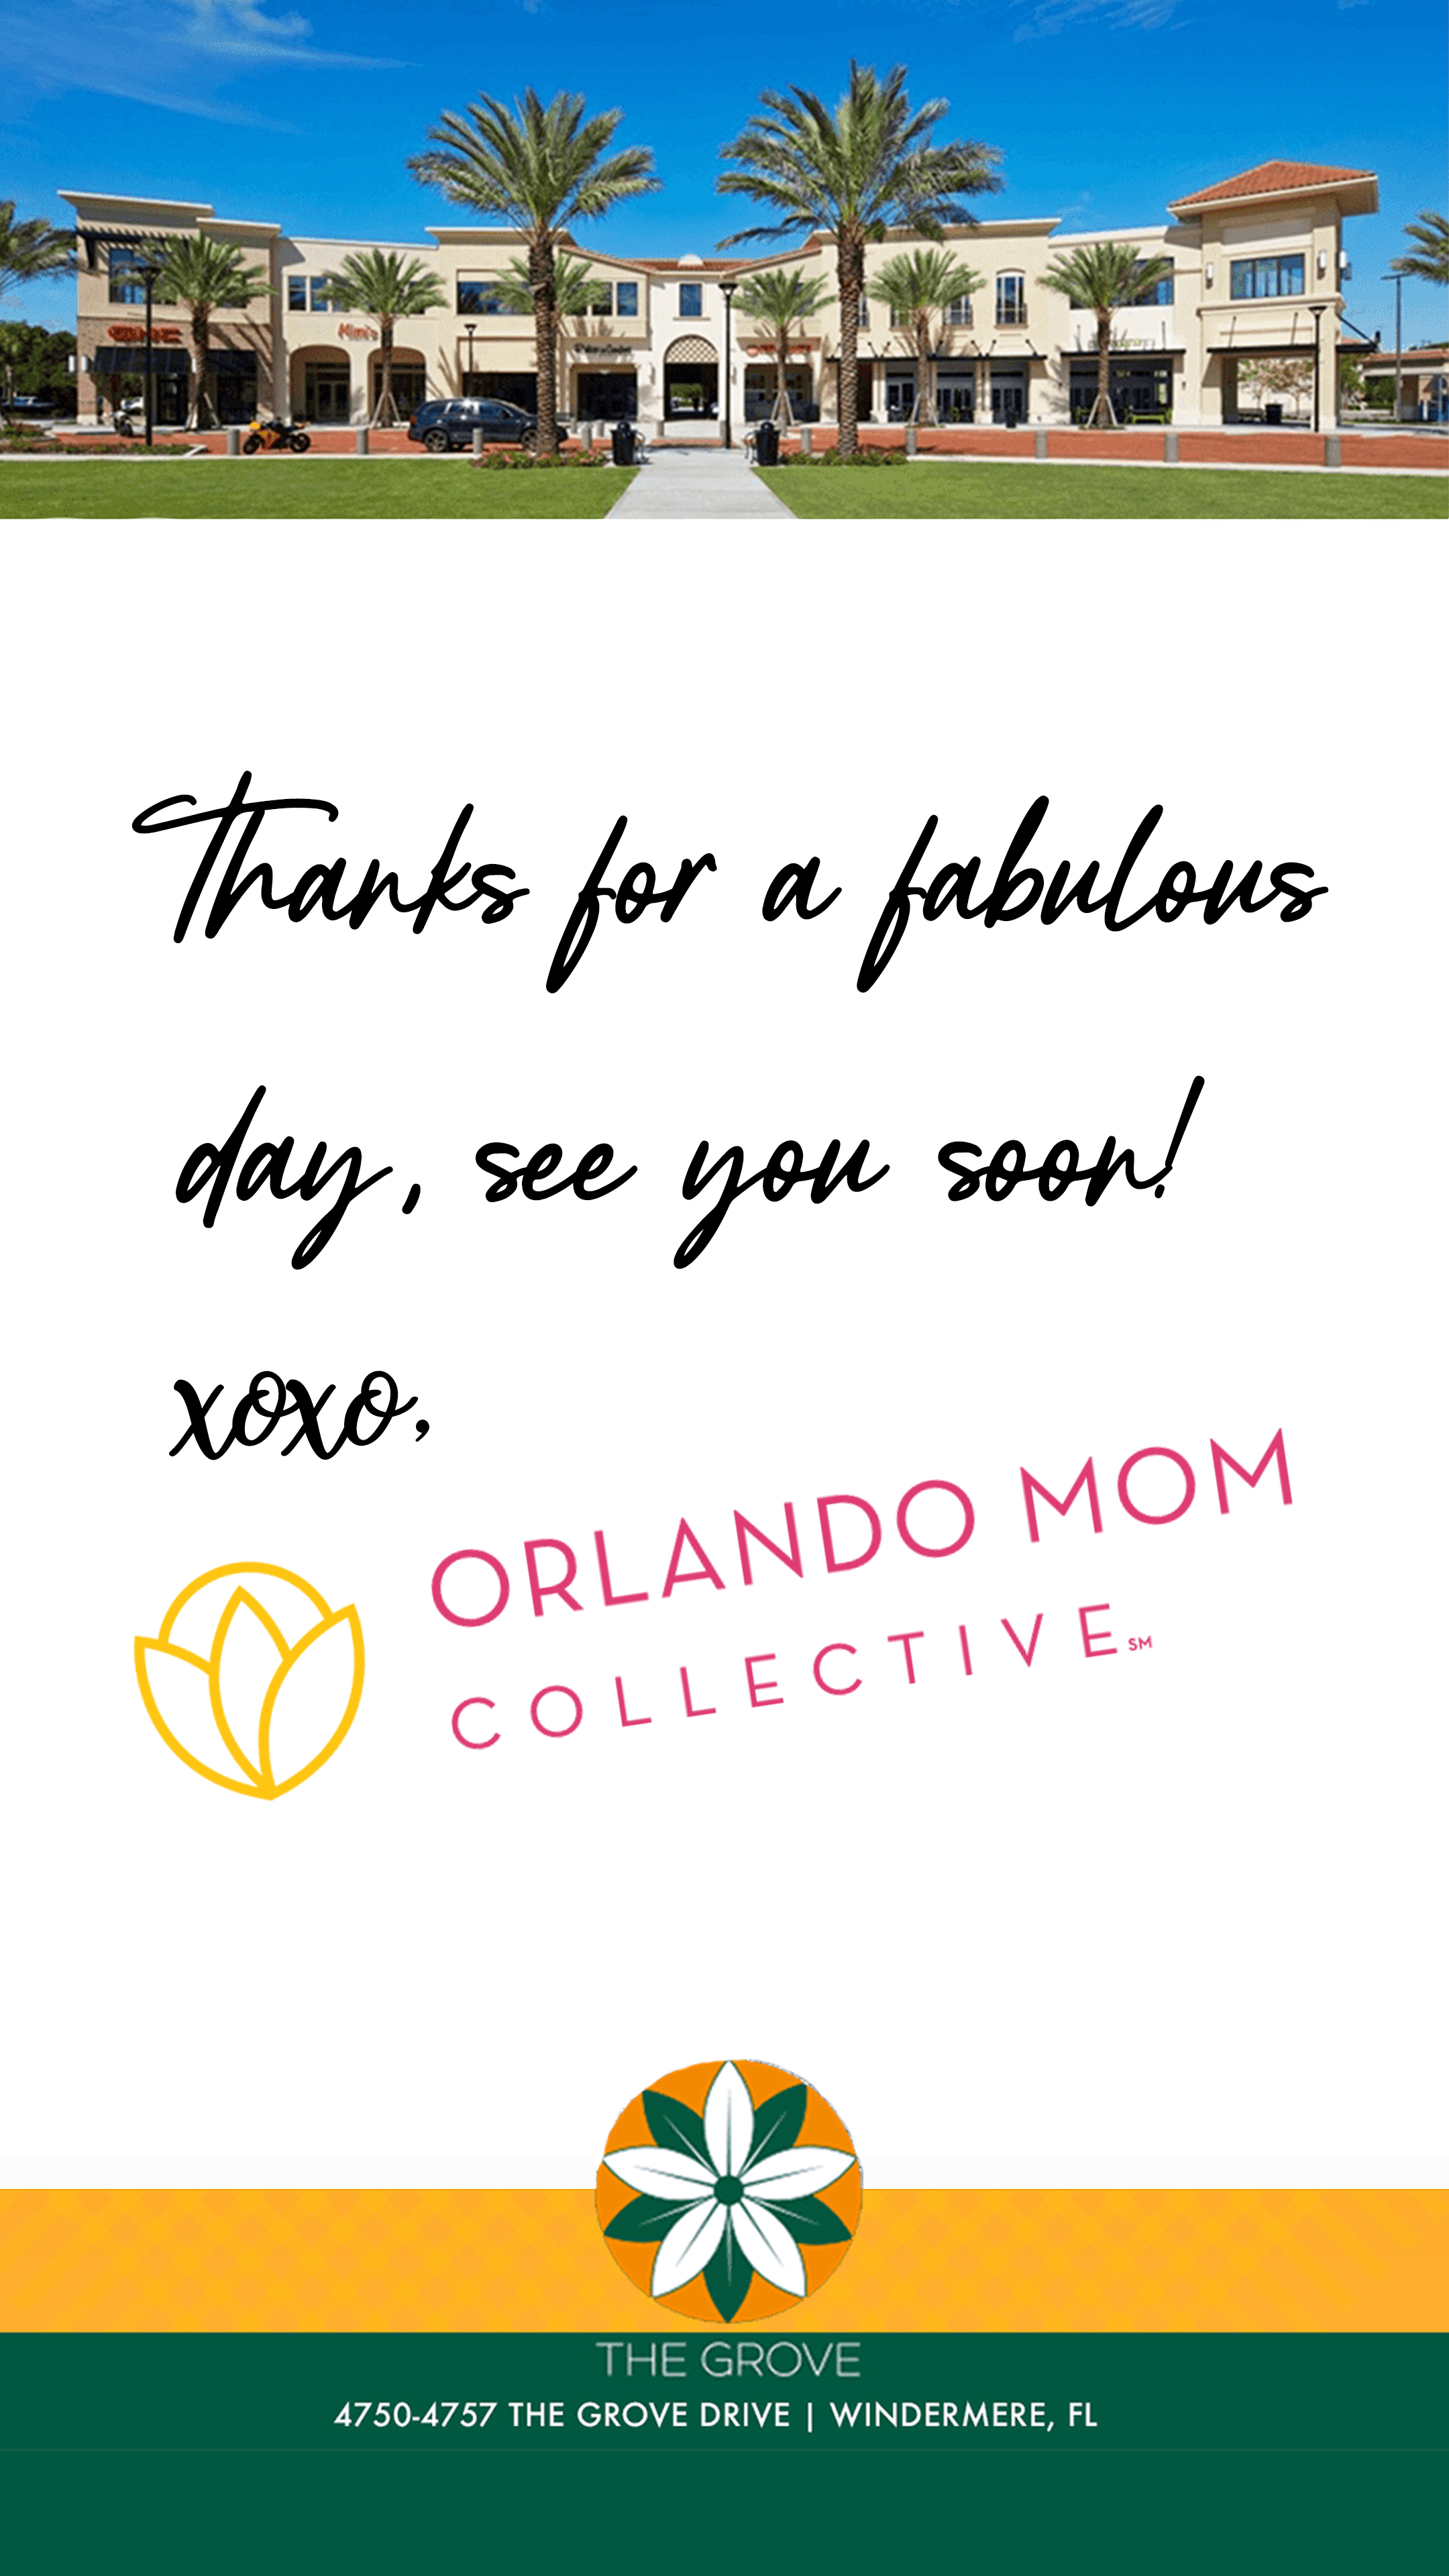 The Grove Orlando and Orlando Mom Collective